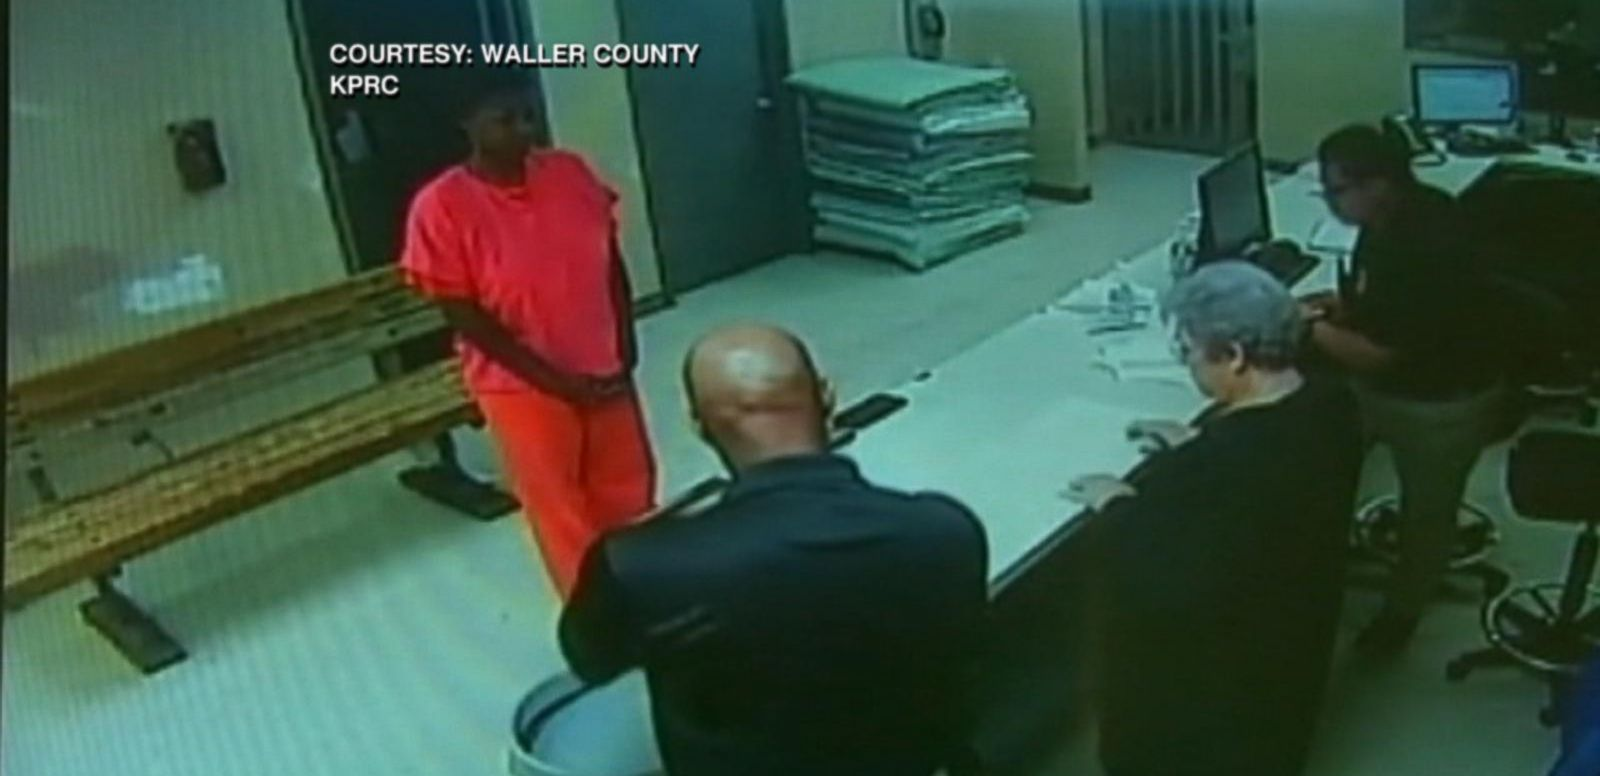 VIDEO: Sandra Bland Jail Death Investigation